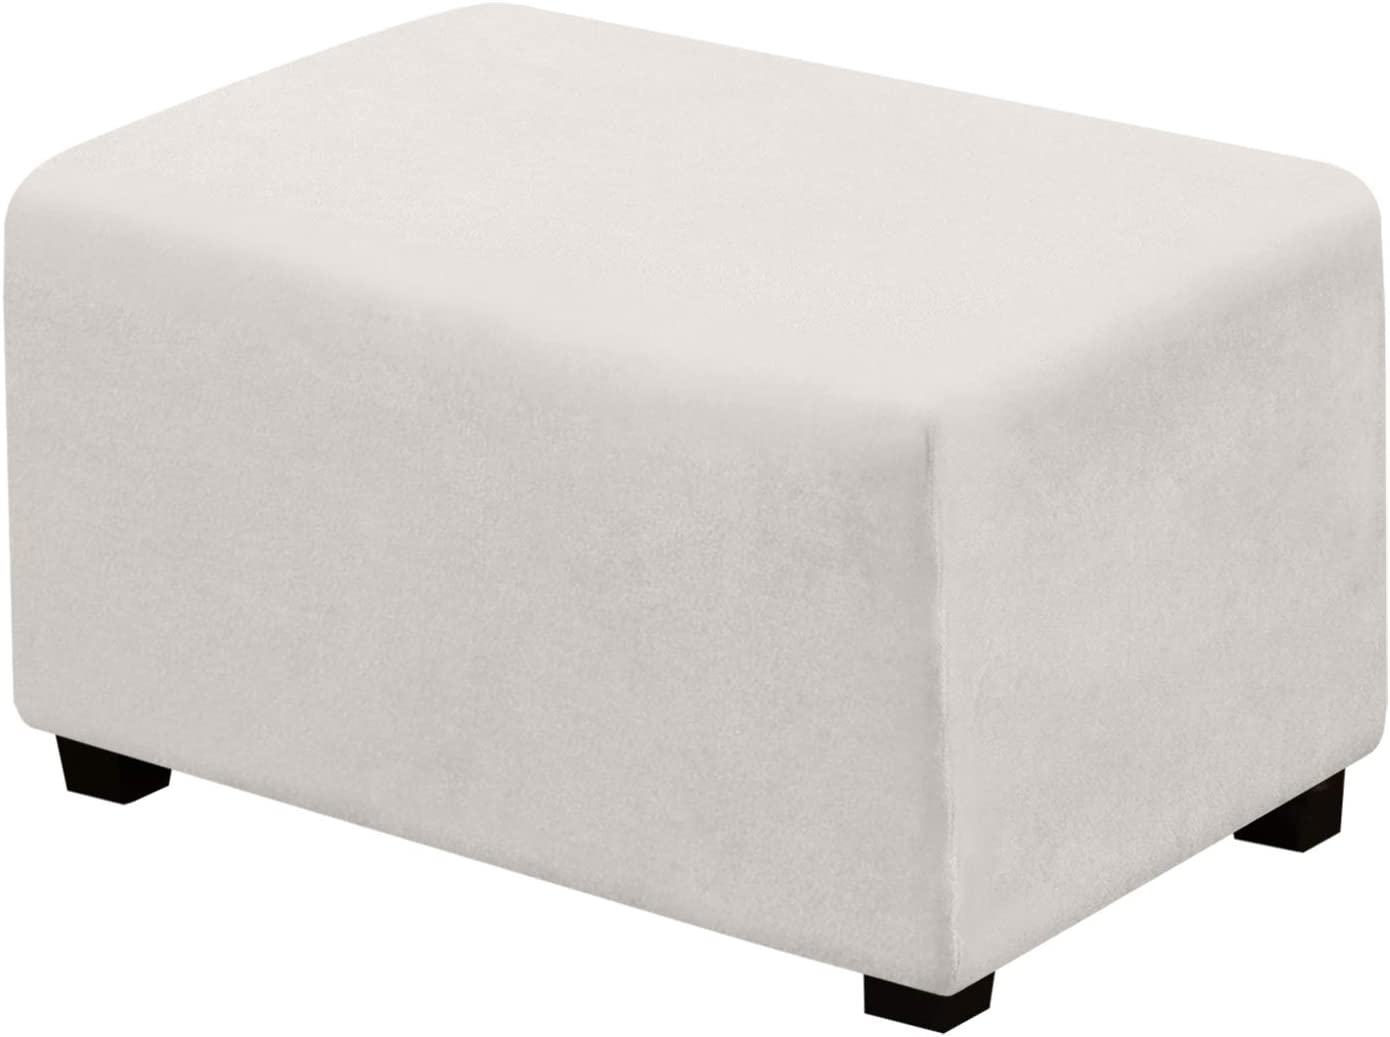 Suede Ottoman Cover Ottoman Slipcovers Removable Footstool Protector Velvet Plush 1 Piece Water Repellent Furniture Protector with Elastic Bottom, Machine Washable(Ottoman Large, Off White)